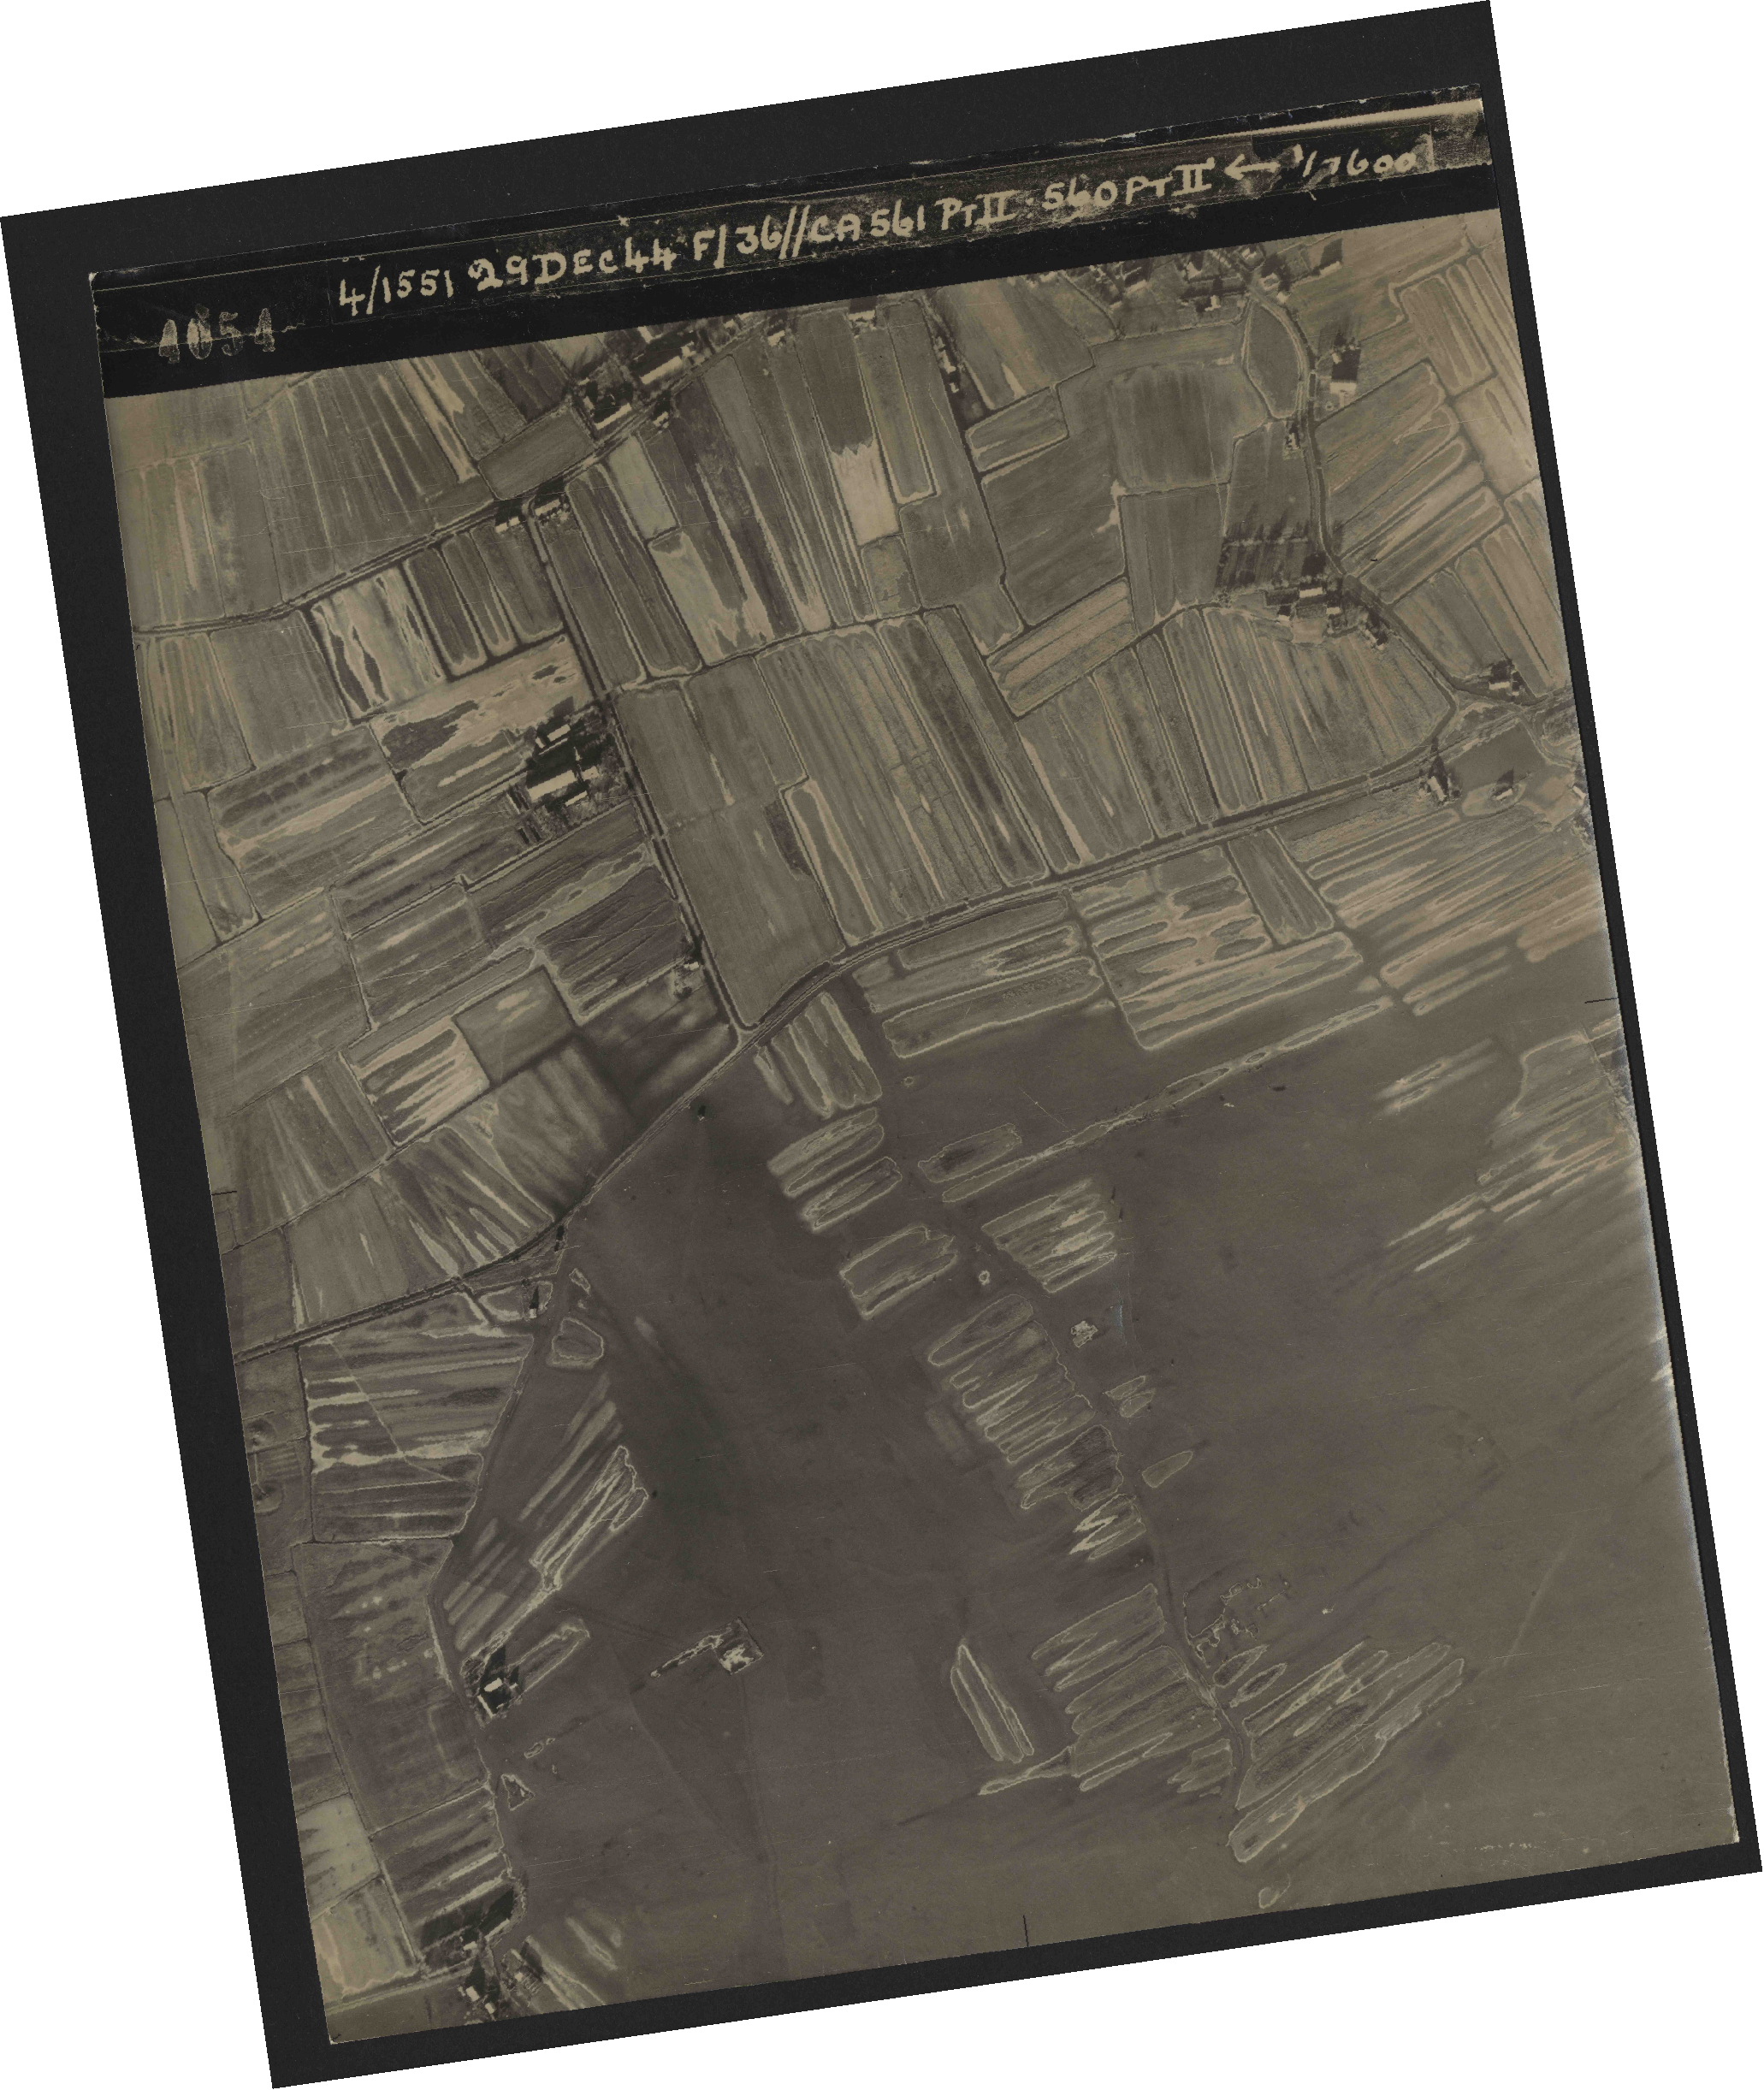 Collection RAF aerial photos 1940-1945 - flight 092, run 08, photo 4054